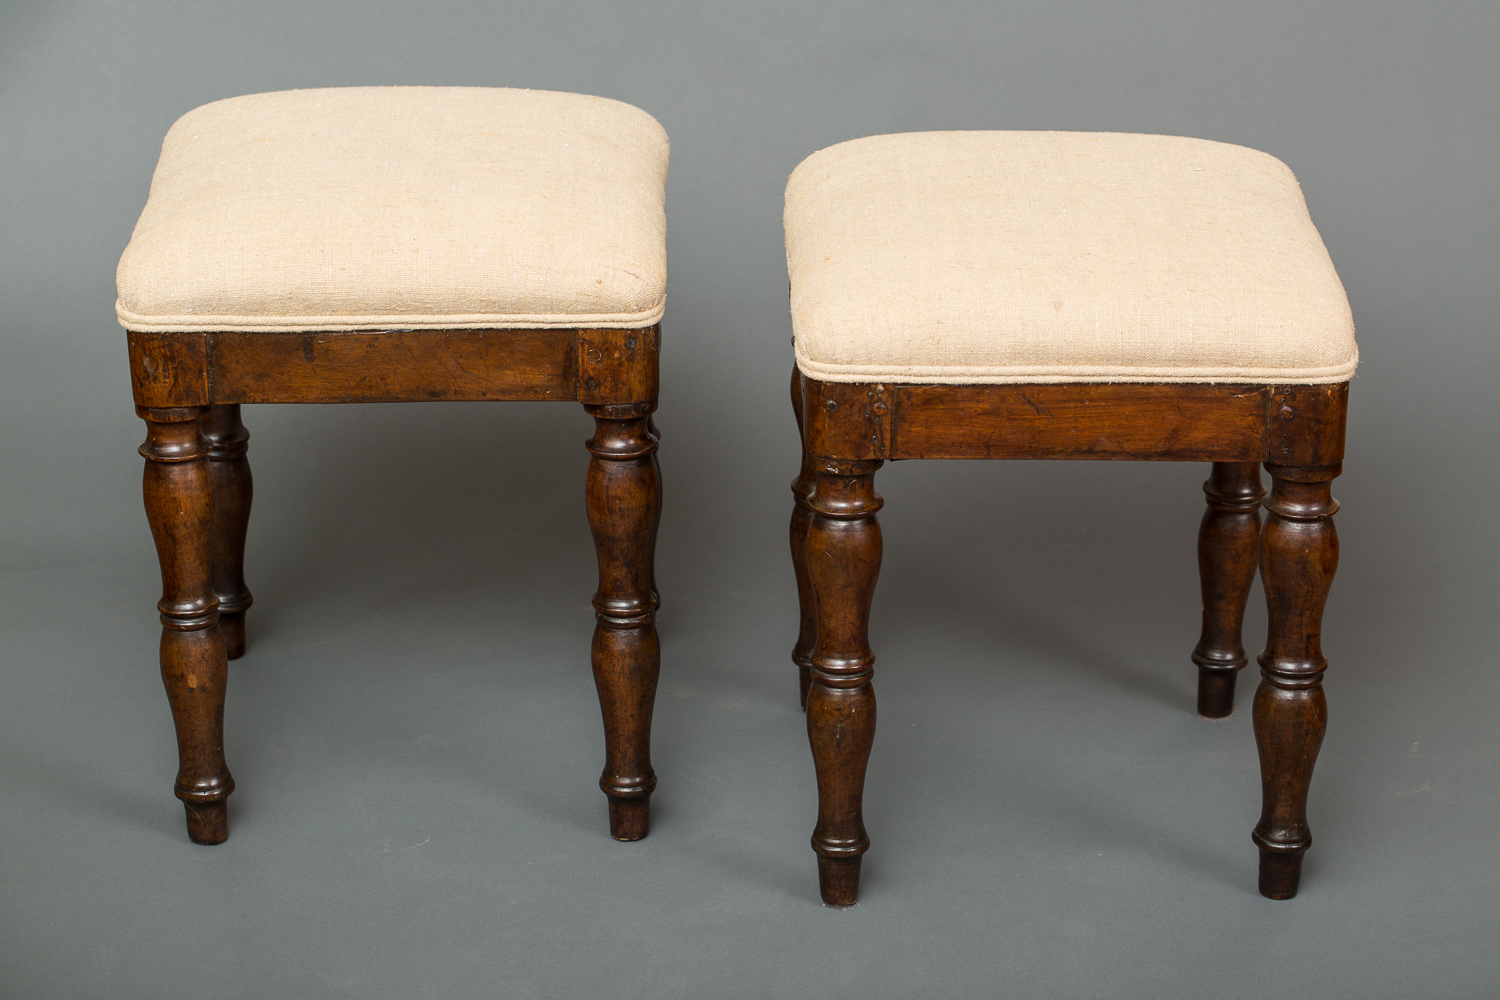 Pair of Italian Stools